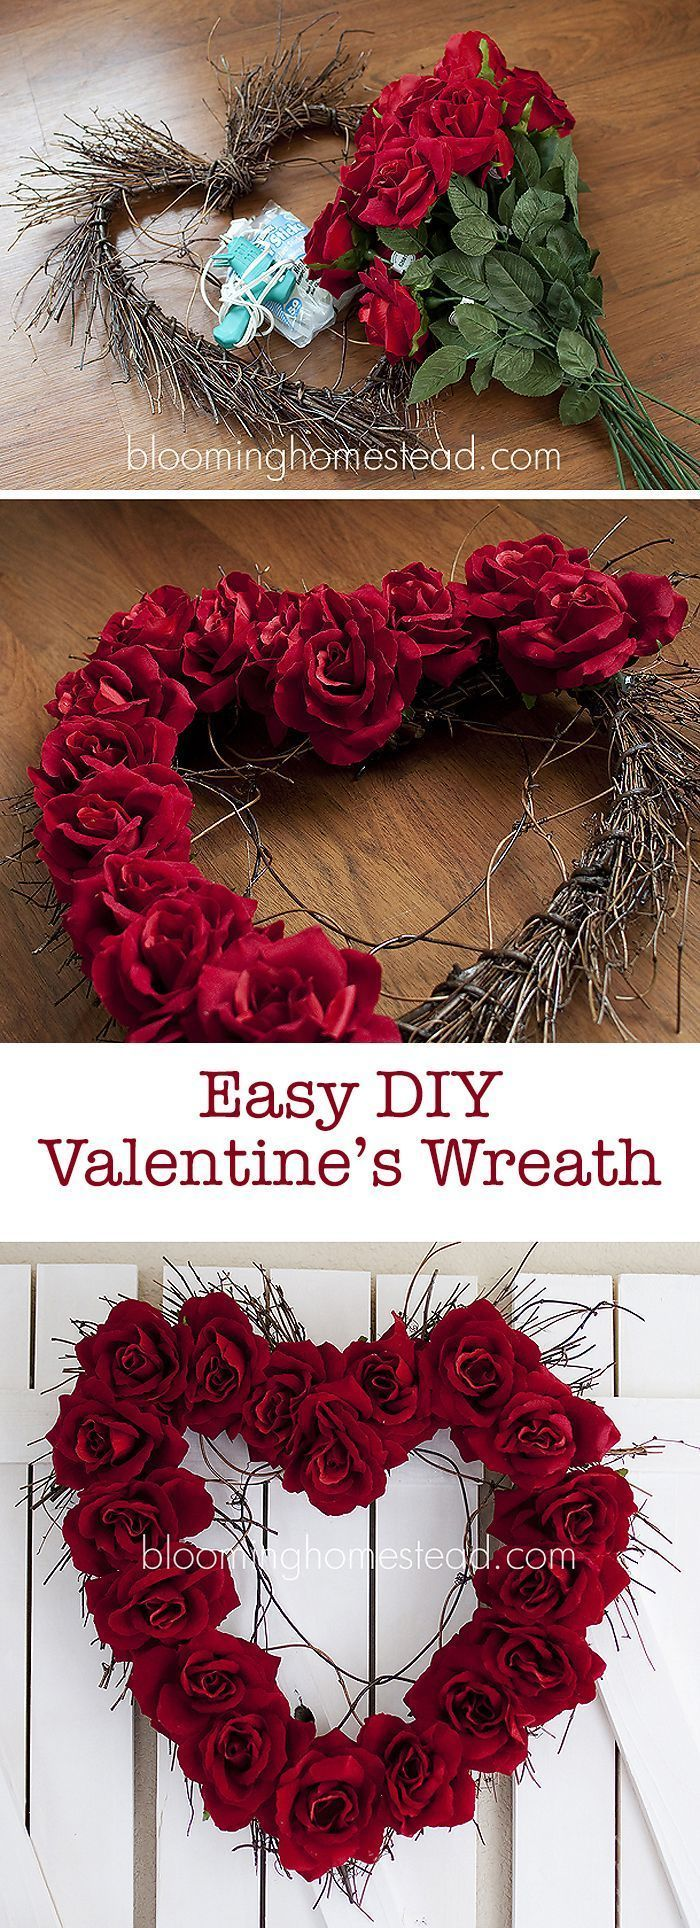 DIY Valentine Wreath that is so easy